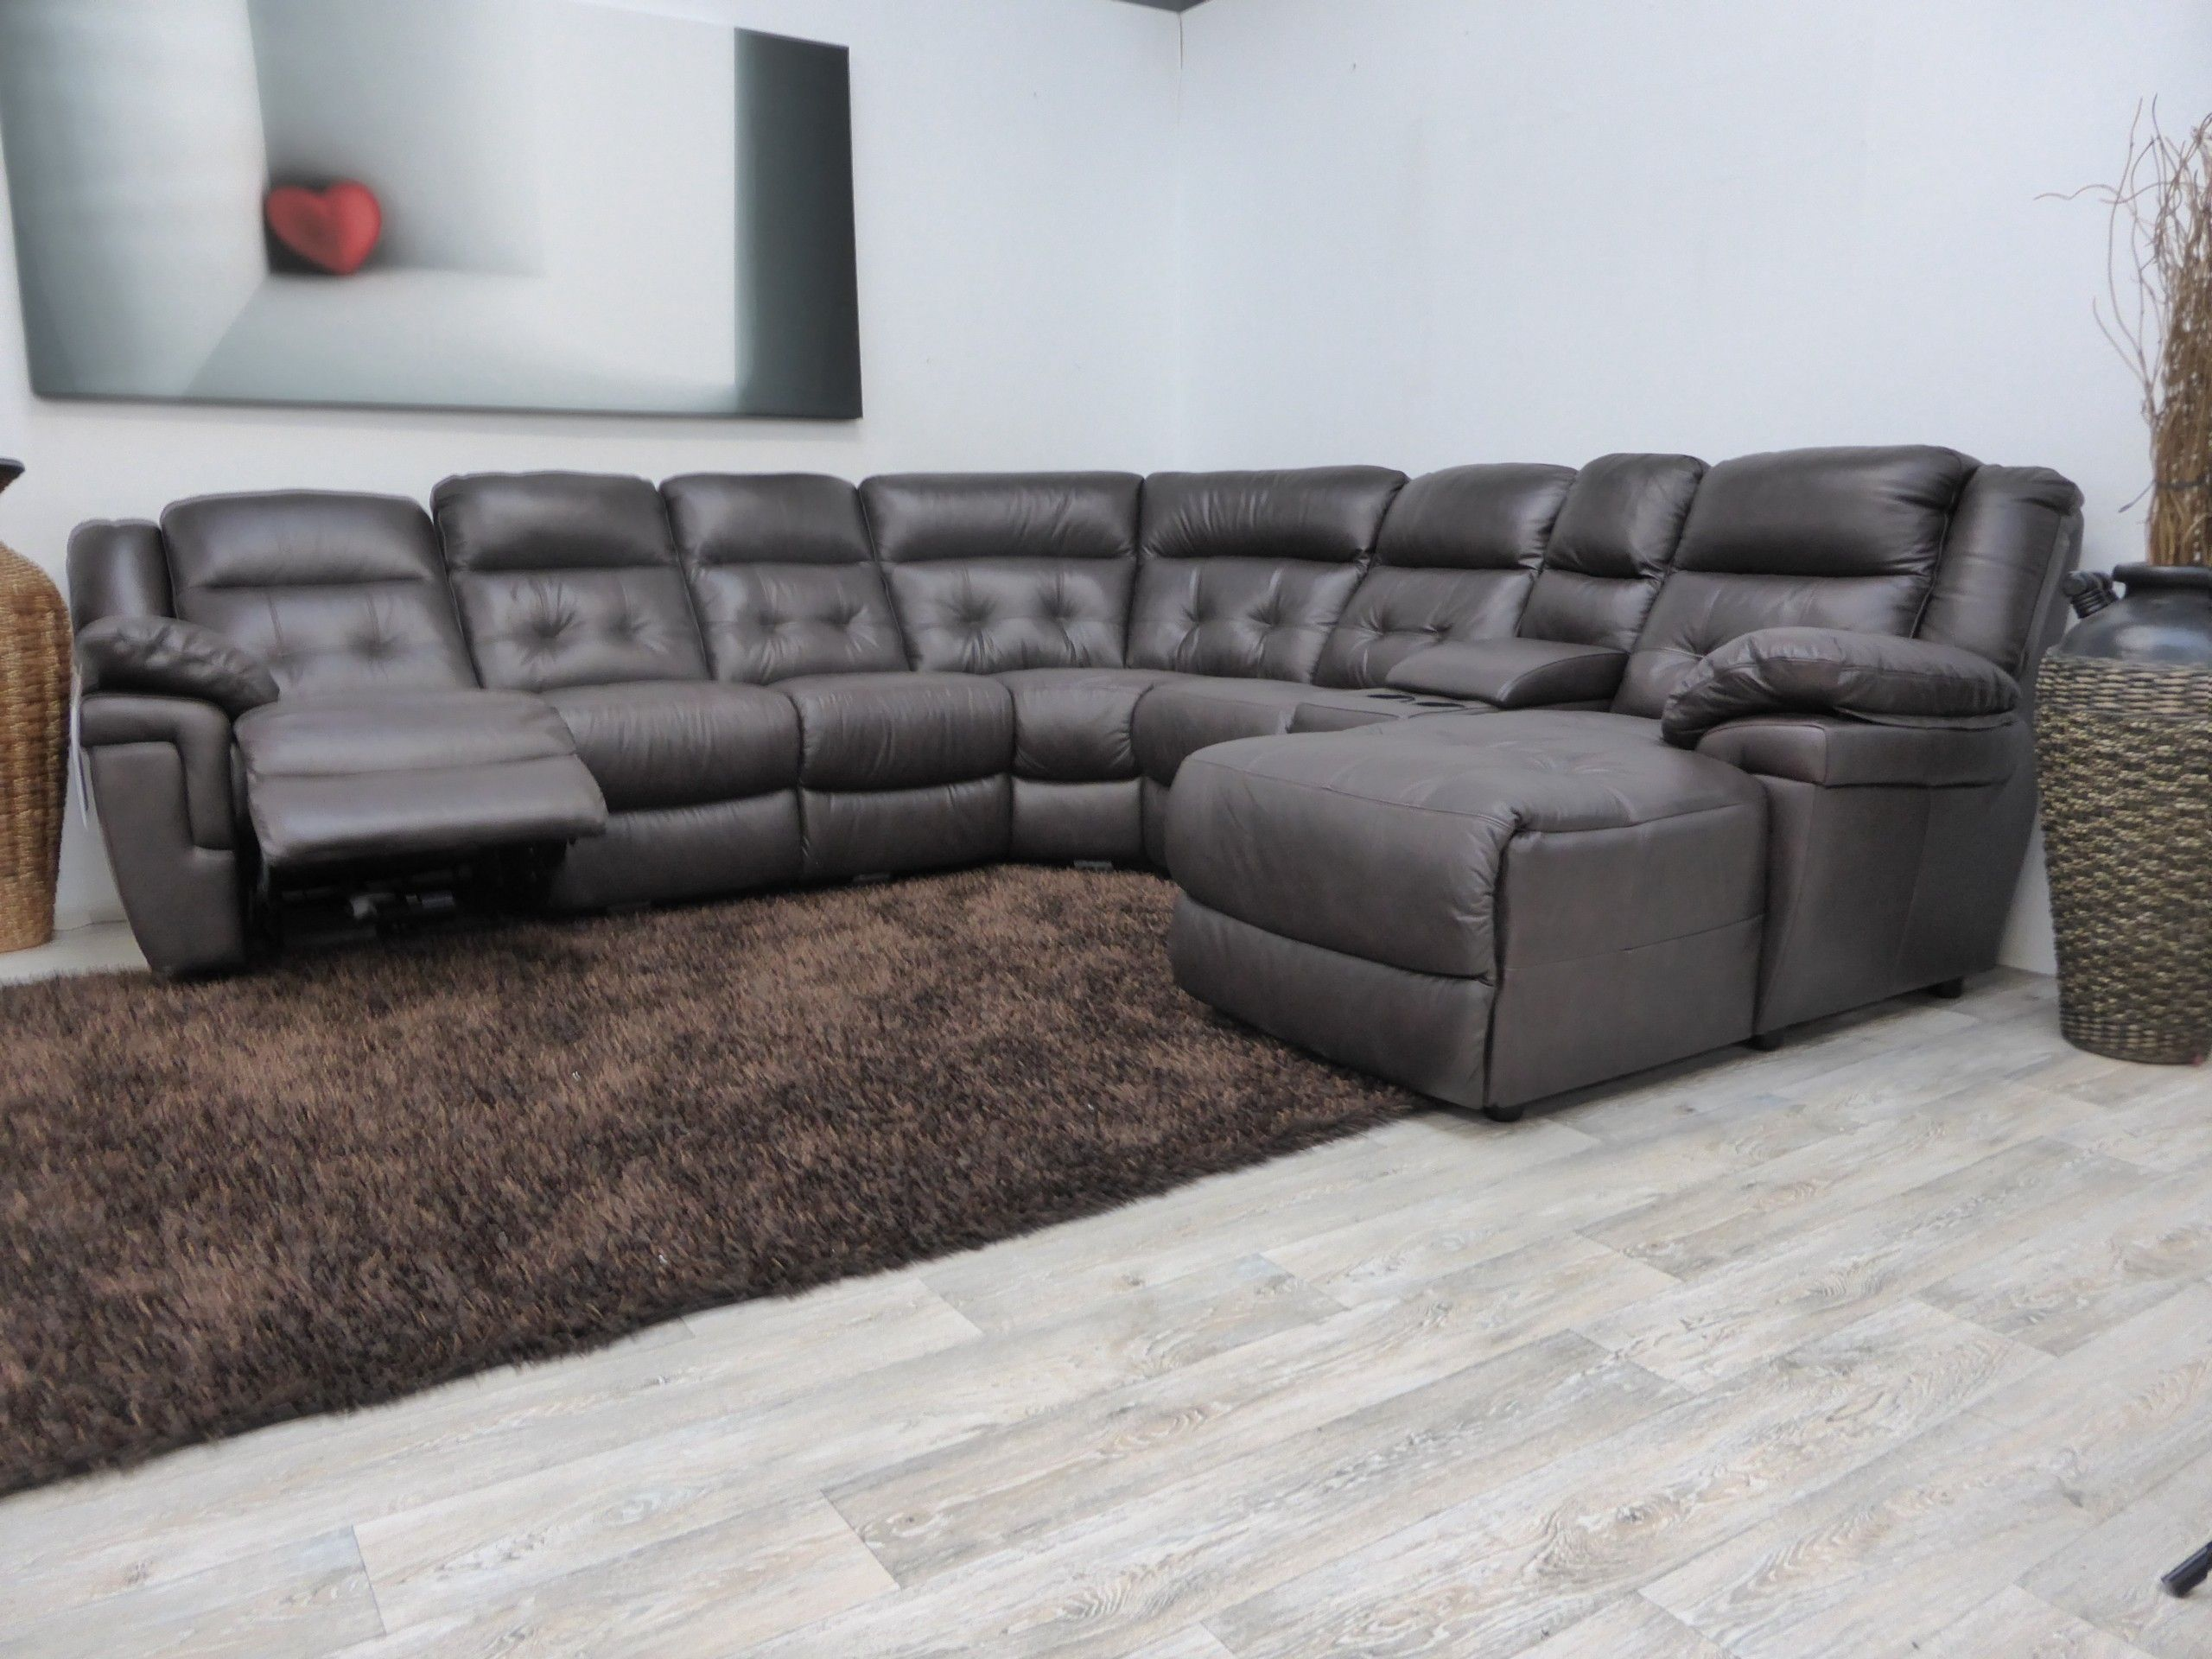 Furniture Living Room L Shaped Gray Leather Sectional Sofa With Chaise and Recliner Lazy Boy Leather : gray l shaped sectional - Sectionals, Sofas & Couches